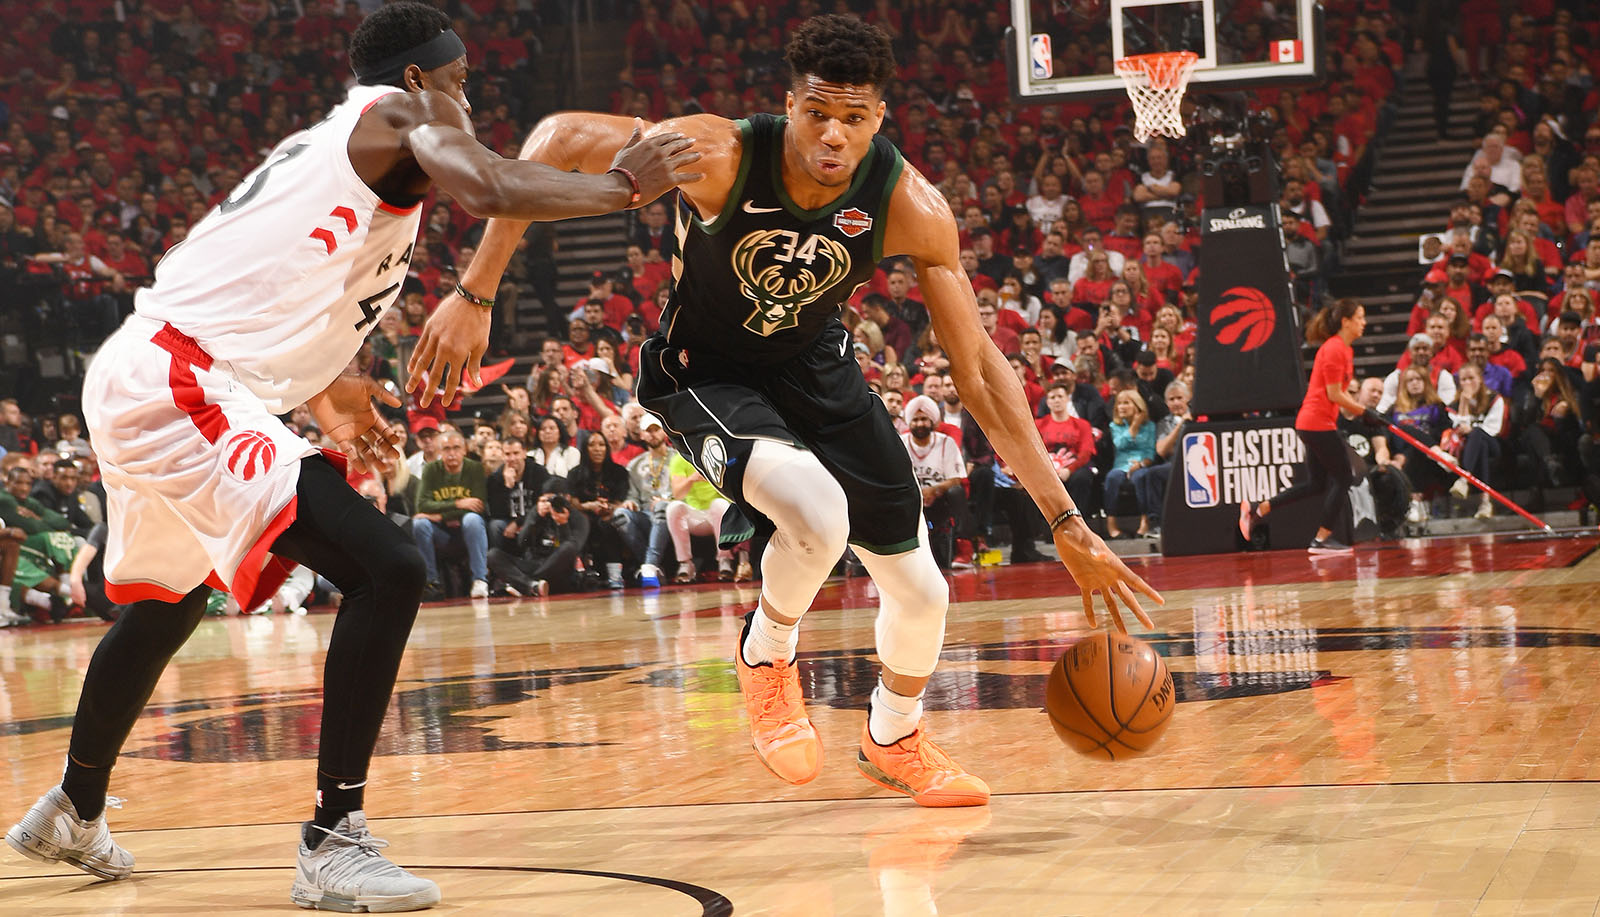 TORONTO, CANADA - MAY 25: Giannis Antetokounmpo #34 of the Milwaukee Bucks handles the ball during the game against Pascal Siakam #43 of the Toronto Raptors during Game Six of the Eastern Conference Finals on May 25, 2019 at Scotiabank Arena in Toronto, Ontario, Canada. NOTE TO USER: User expressly acknowledges and agrees that, by downloading and/or using this photograph, user is consenting to the terms and conditions of the Getty Images License Agreement. Mandatory Copyright Notice: Copyright 2019 NBAE (Photo by Ron Turenne/NBAE via Getty Images)